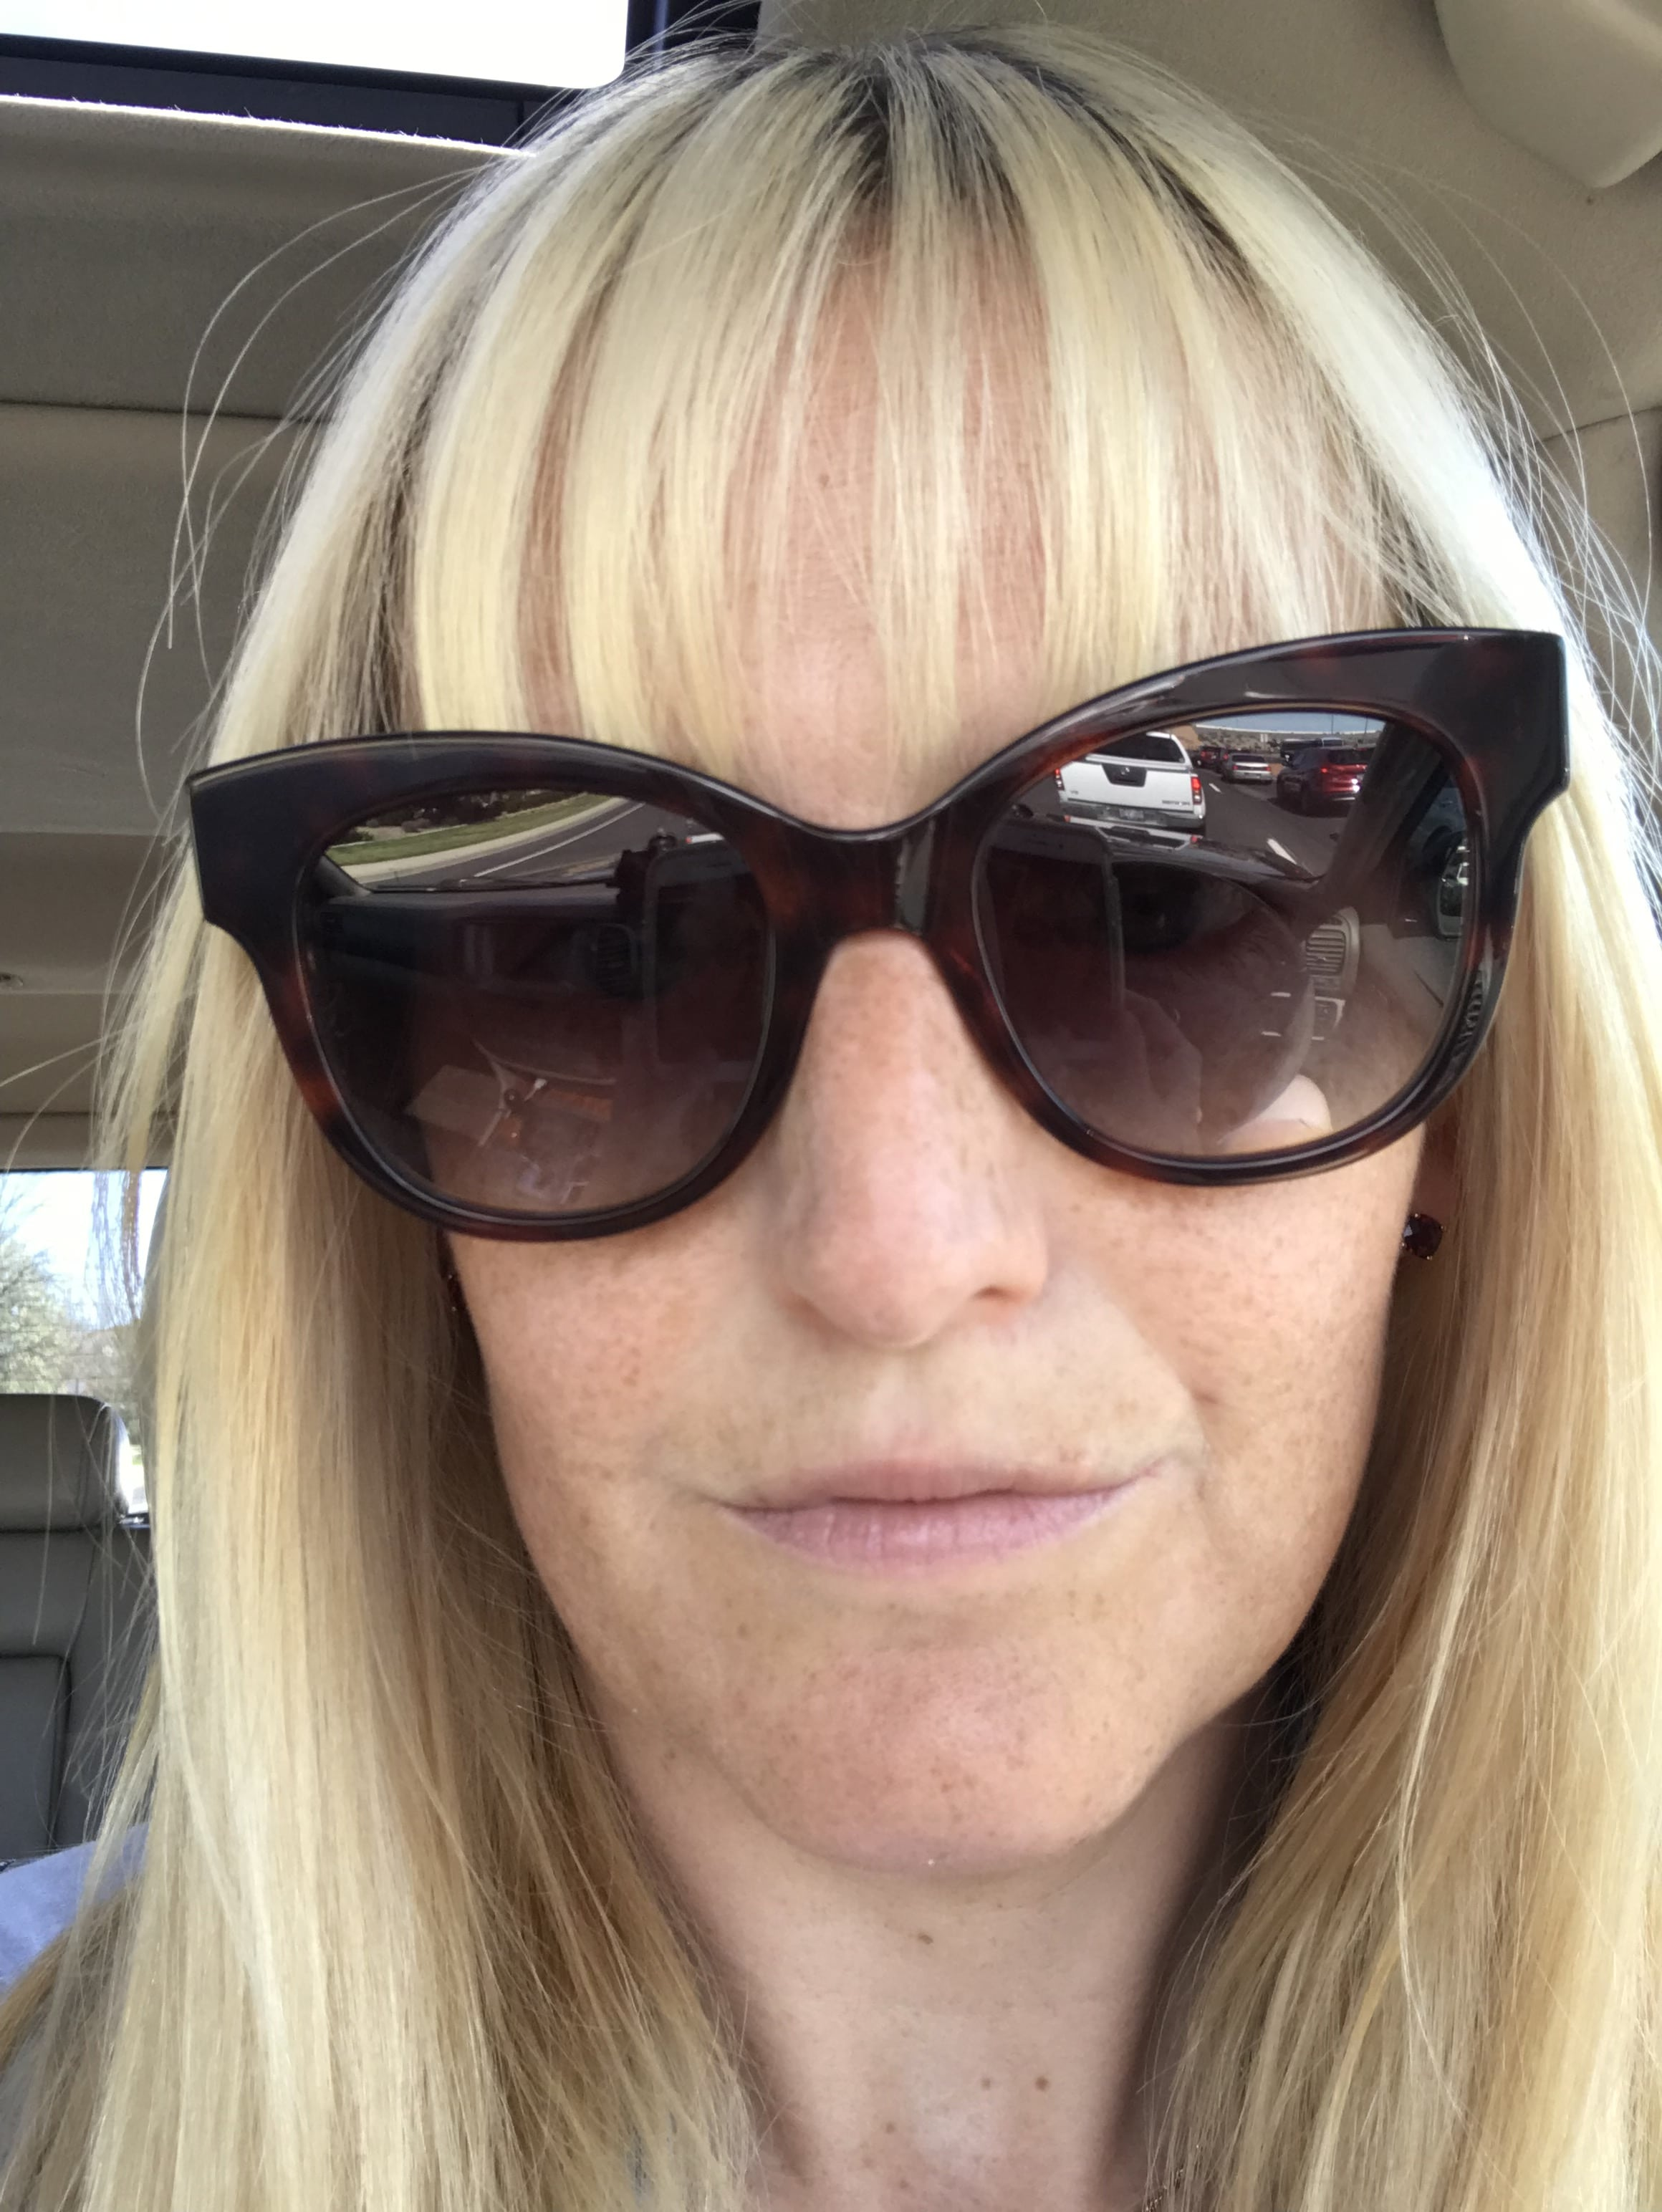 Walmart x Foster Grant sunglasses (and my pair!)